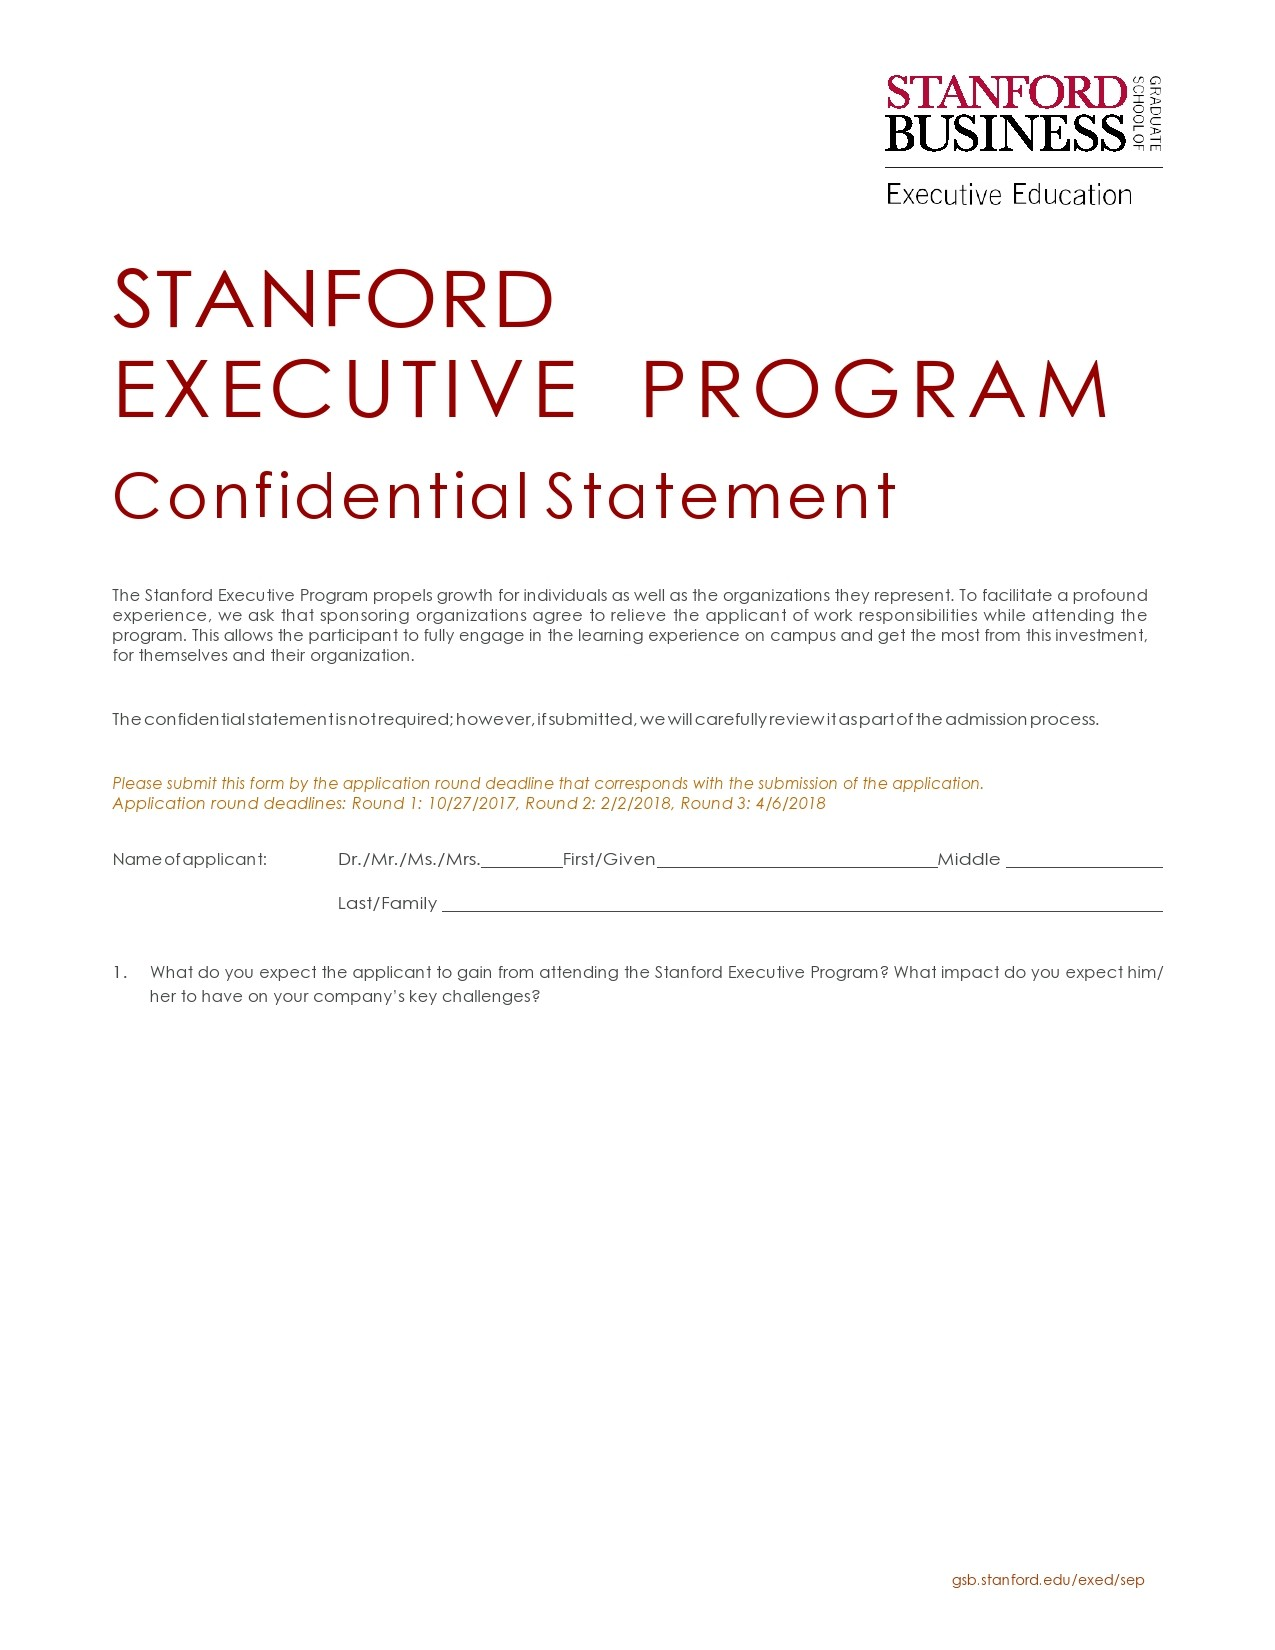 Free confidentiality statement 31